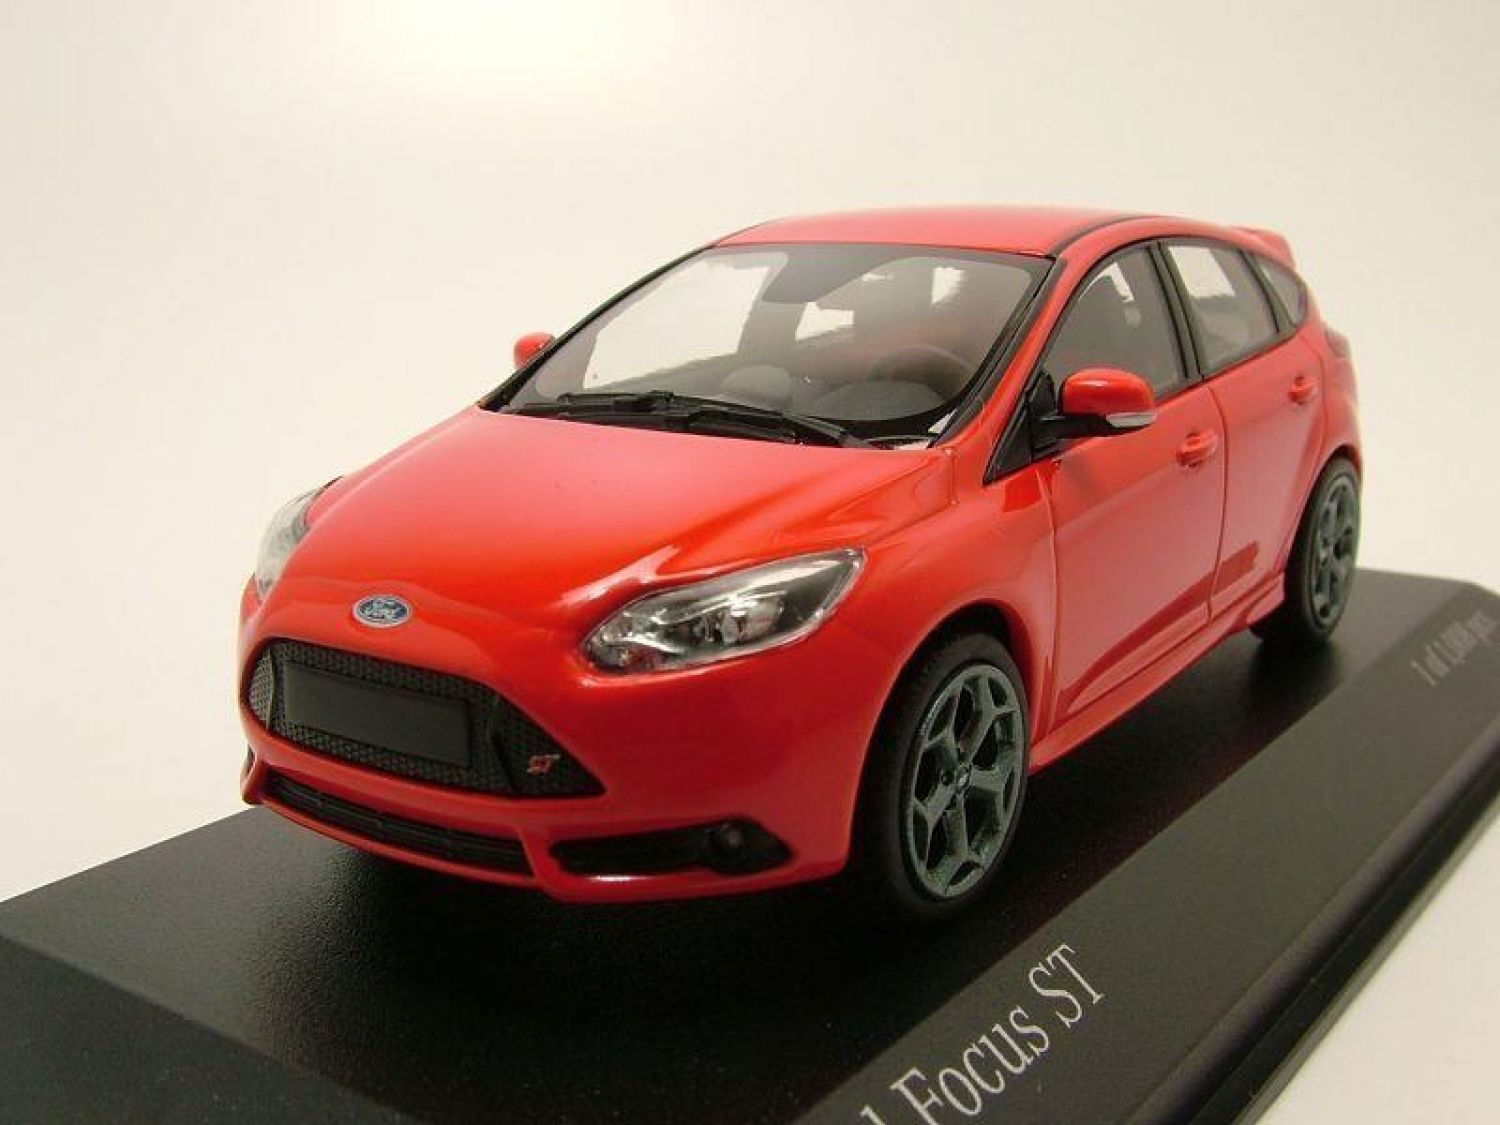 ford focus st 2011 rot modellauto 1 43 minichamps ebay. Black Bedroom Furniture Sets. Home Design Ideas